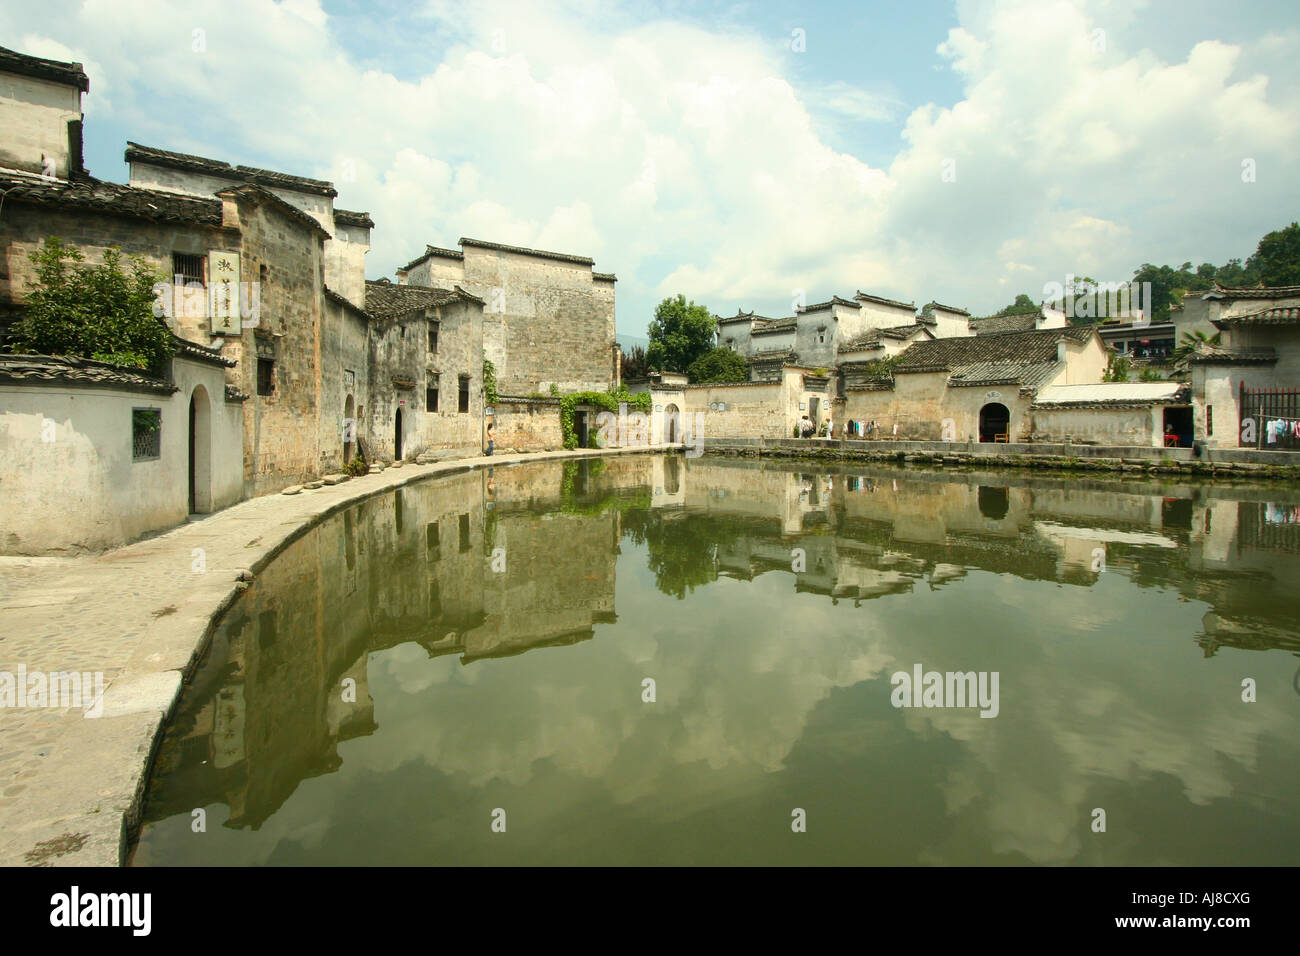 Feng Shui Village feng shui village stock photos & feng shui village stock images - alamy